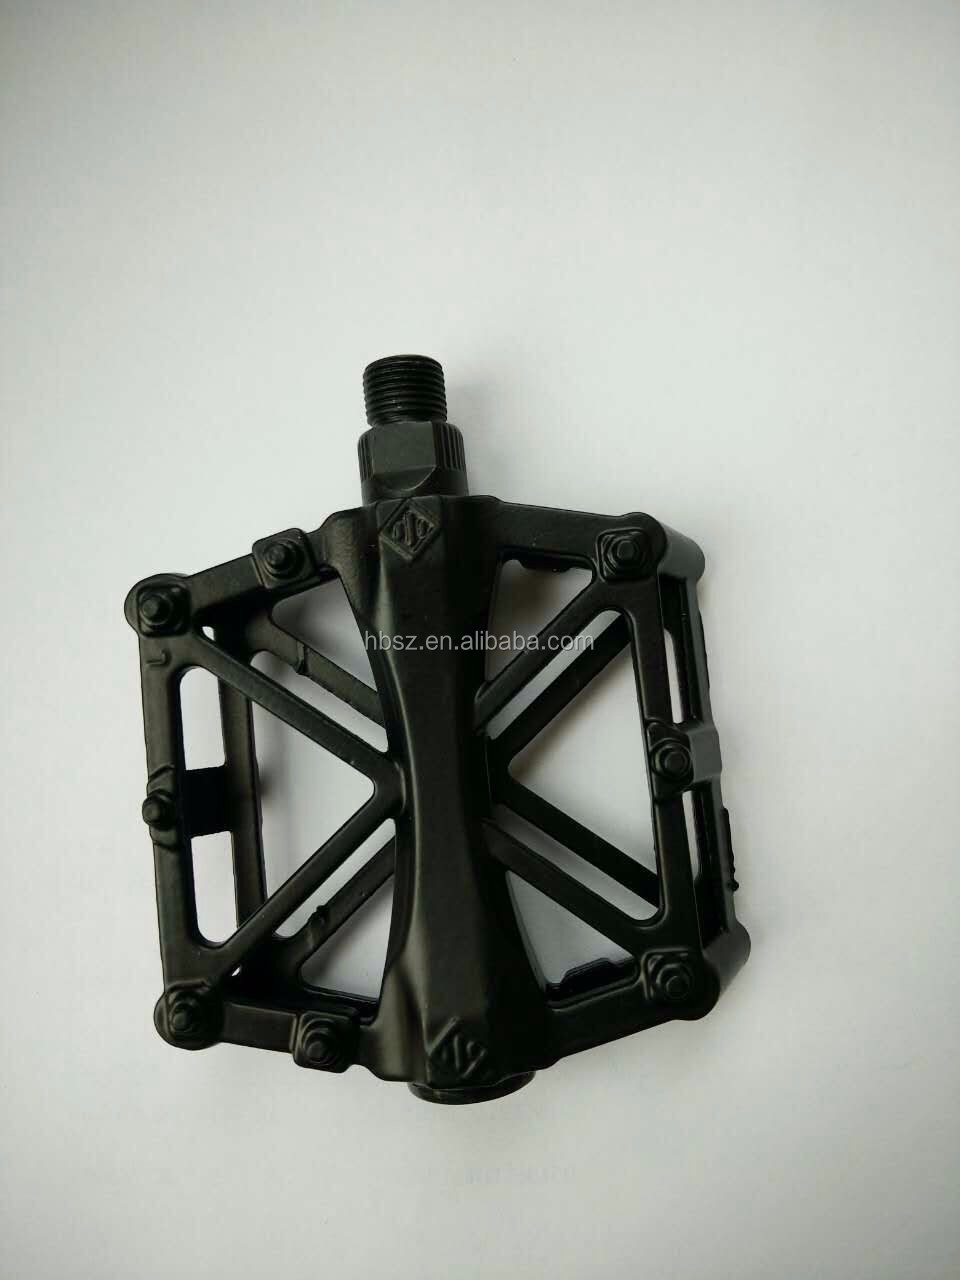 aluminium alloy bicycle accessories bicycle pedal for mountain bike city bike cheap price pedals